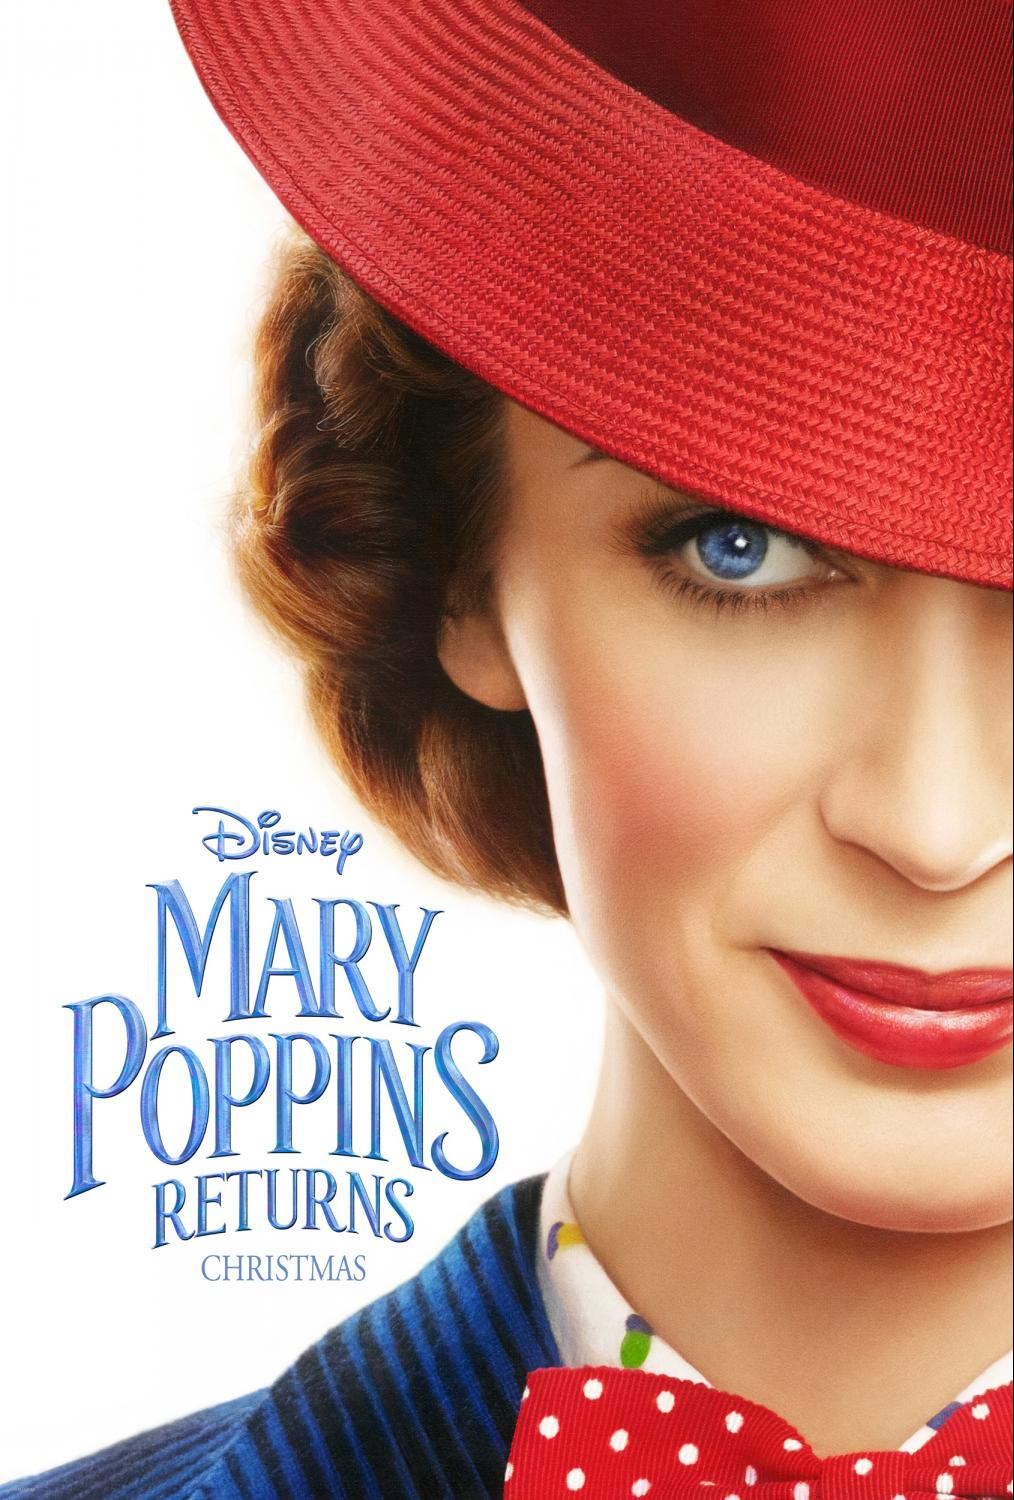 Mary Poppins is back! 5 Best Mary Poppins Returns Teaser Trailer Moments